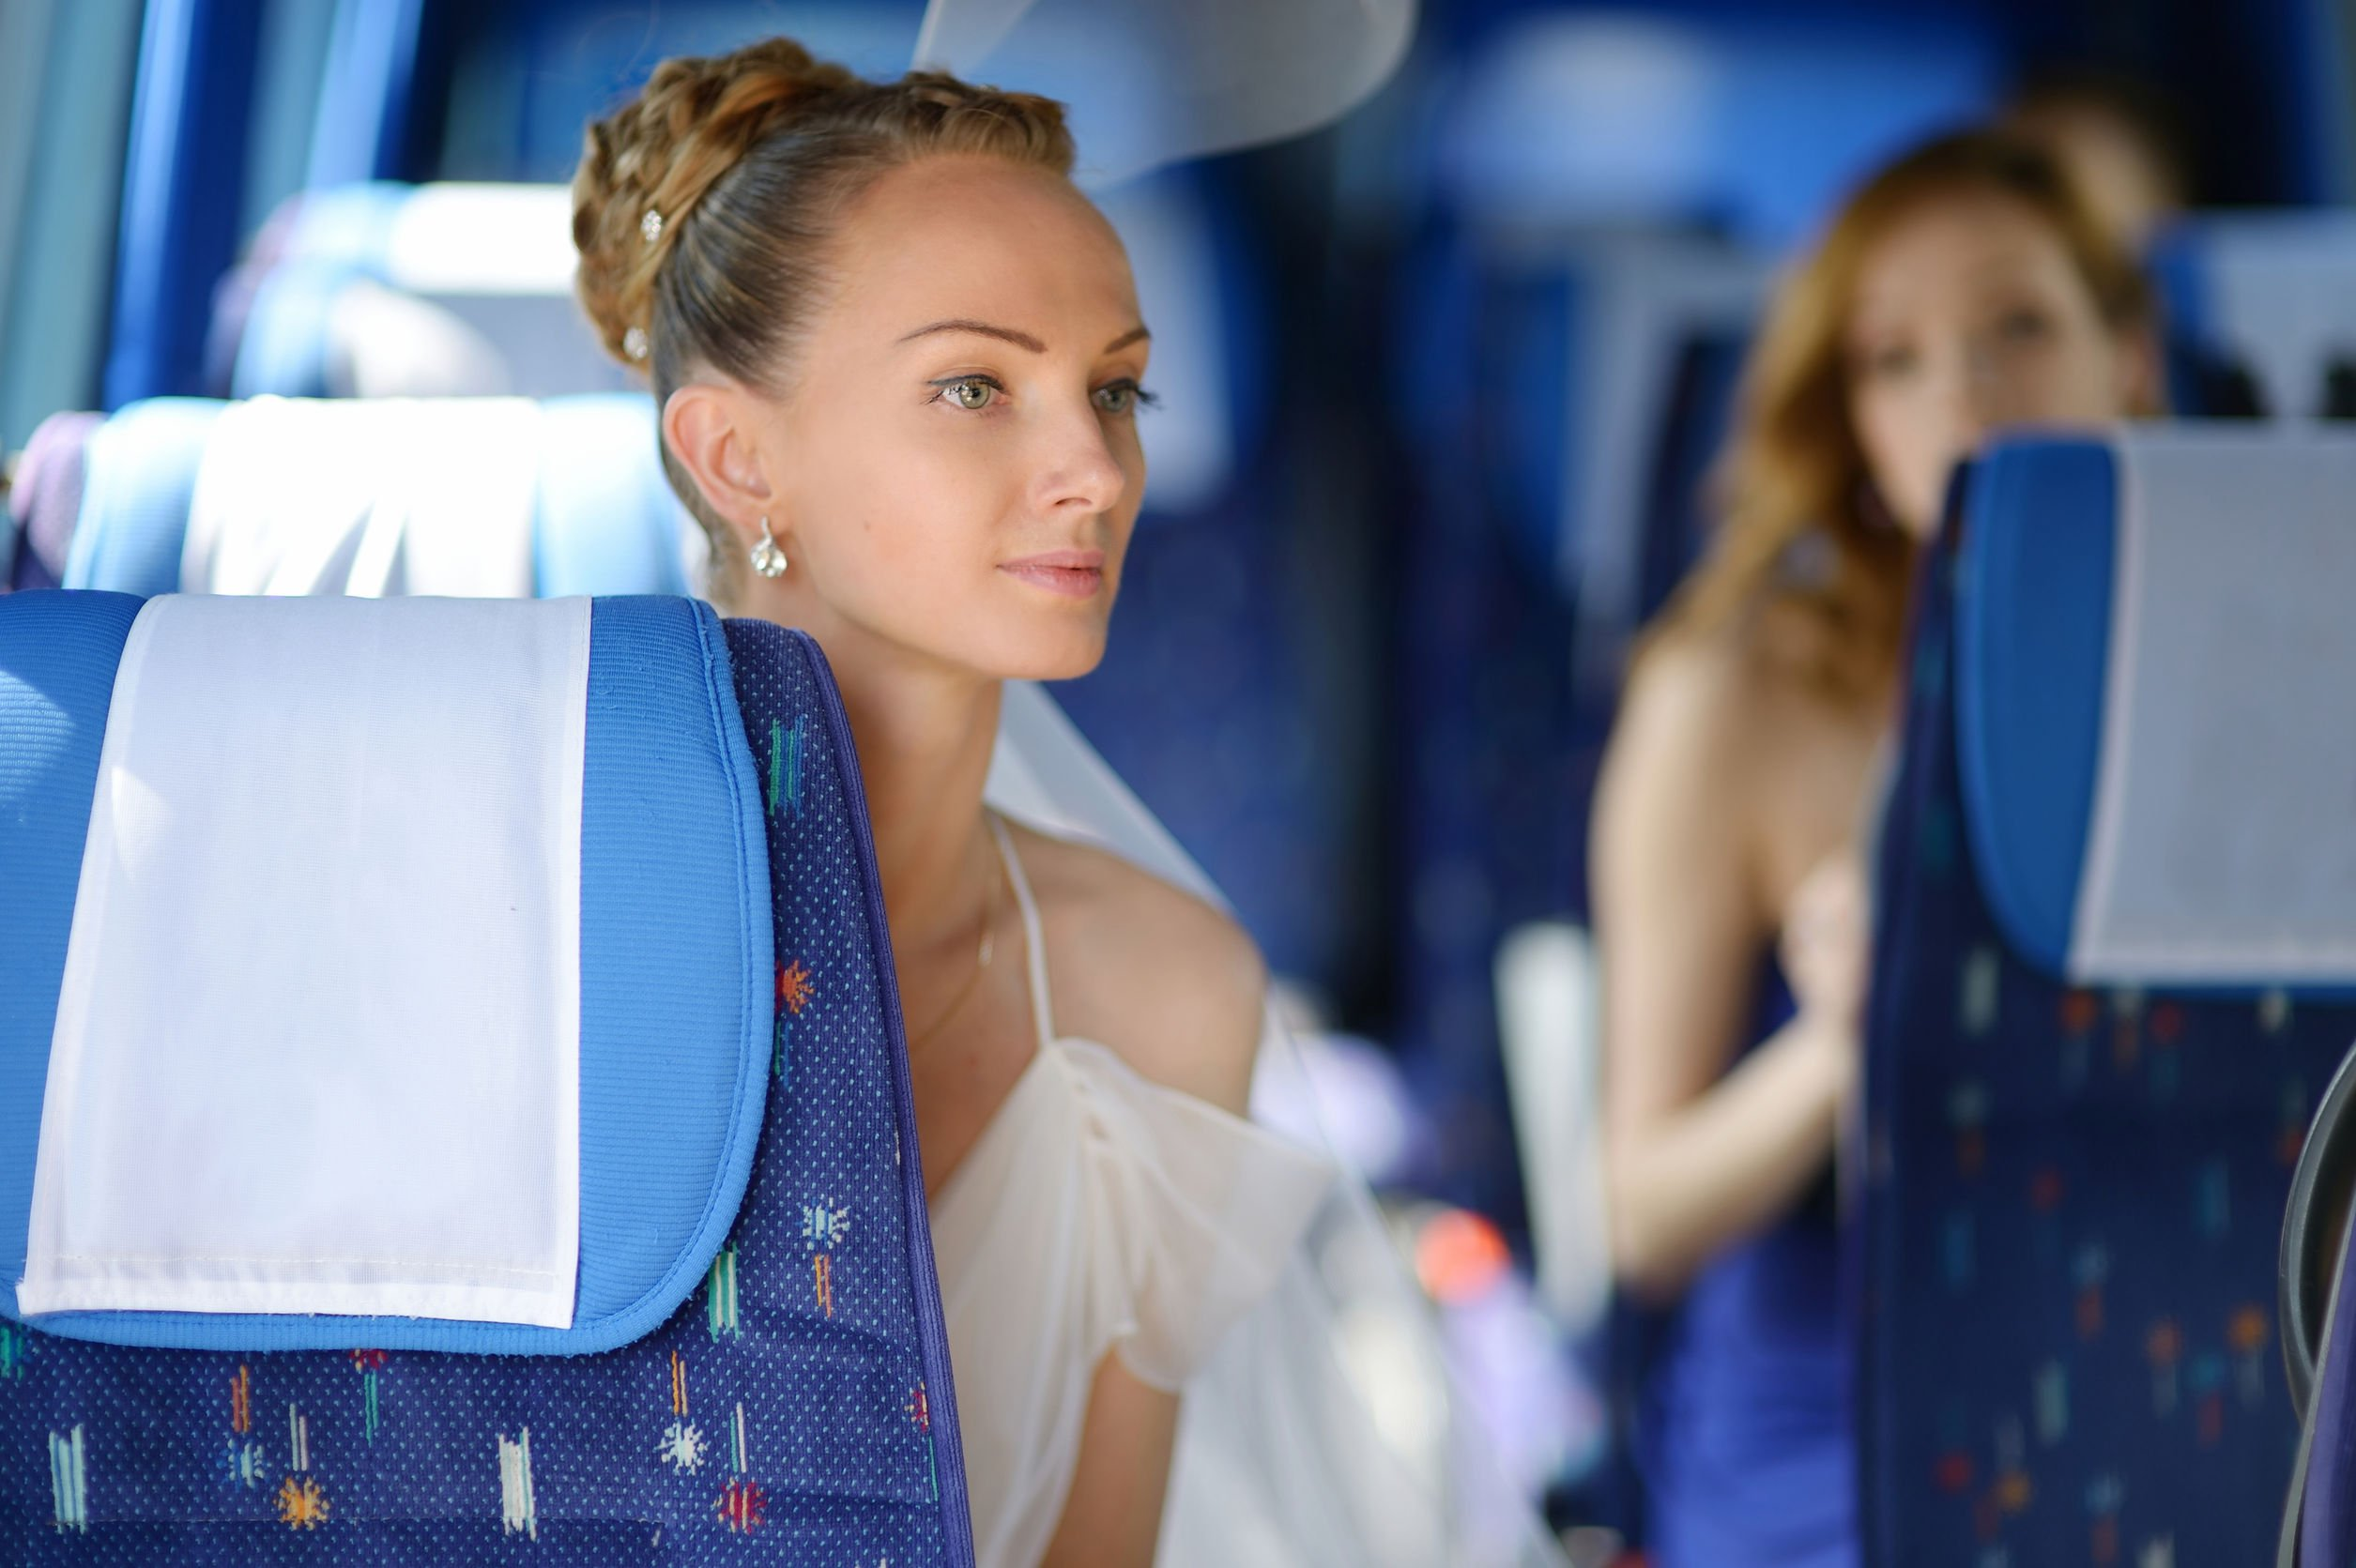 40749958 - beautiful young bride portrait in a wedding bus